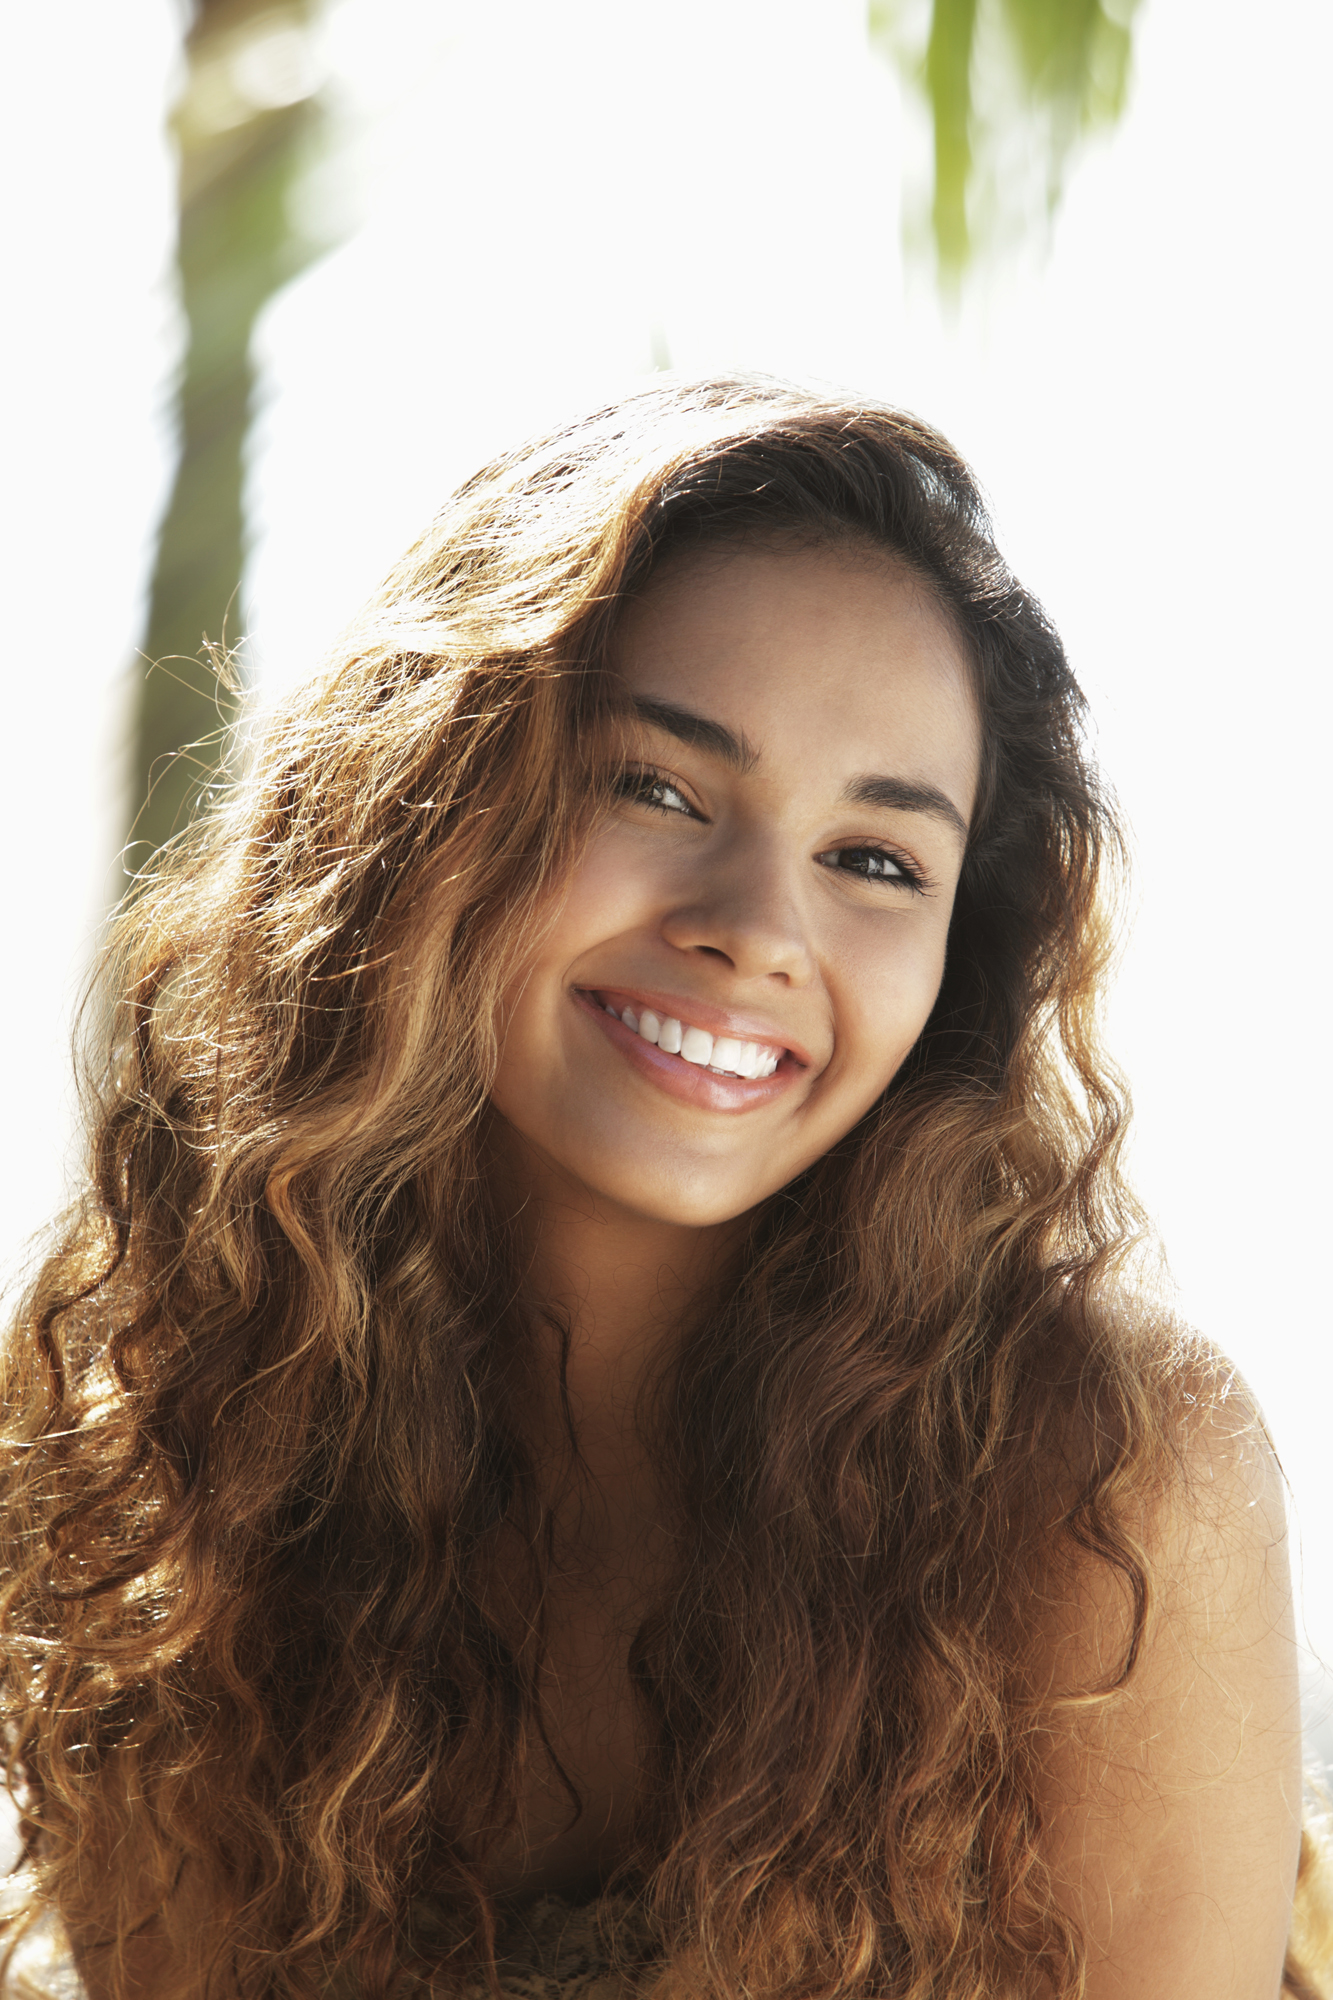 Smiling woman with wavy hair